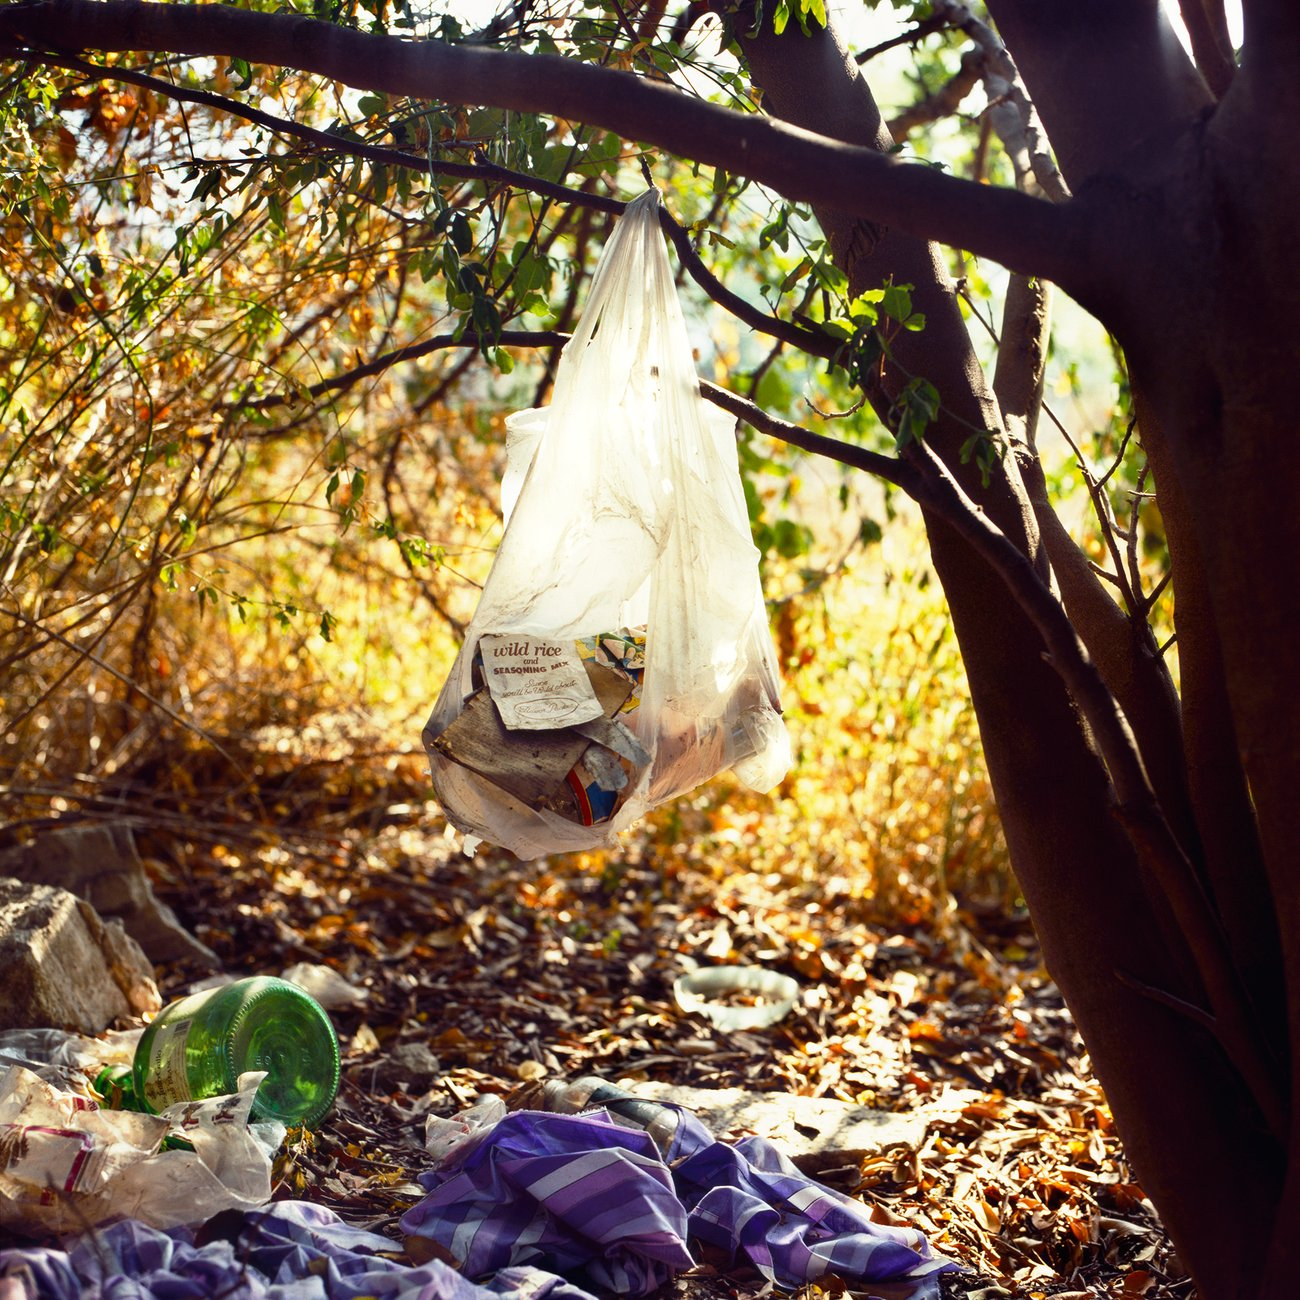 A plastic bag hangs from a tree, amongst various items strewn across the ground